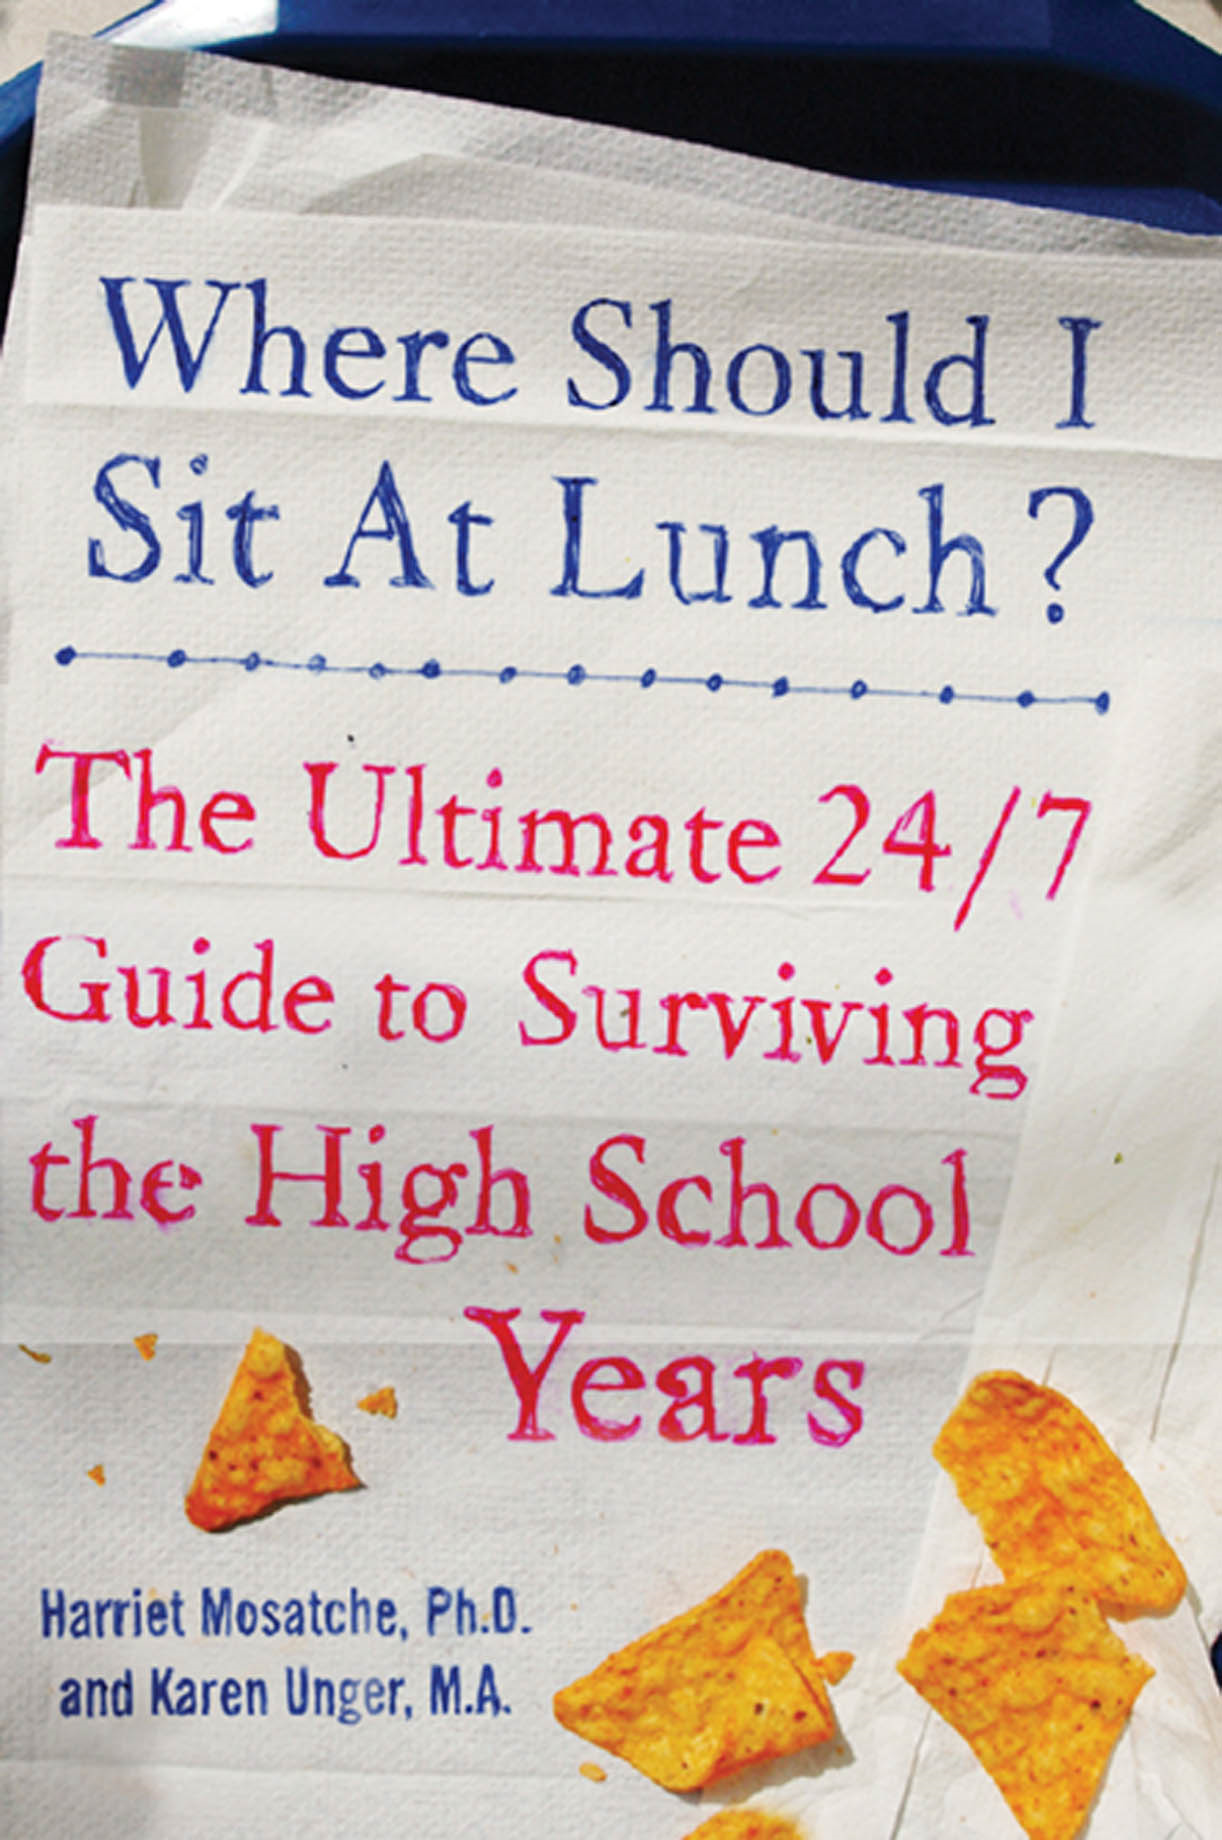 Where Should I Sit at Lunch? : The Ultimate 24/7 Guide to Surviving the High School Years: The Ultimate 24/7 Guide to Surviving the High School Years